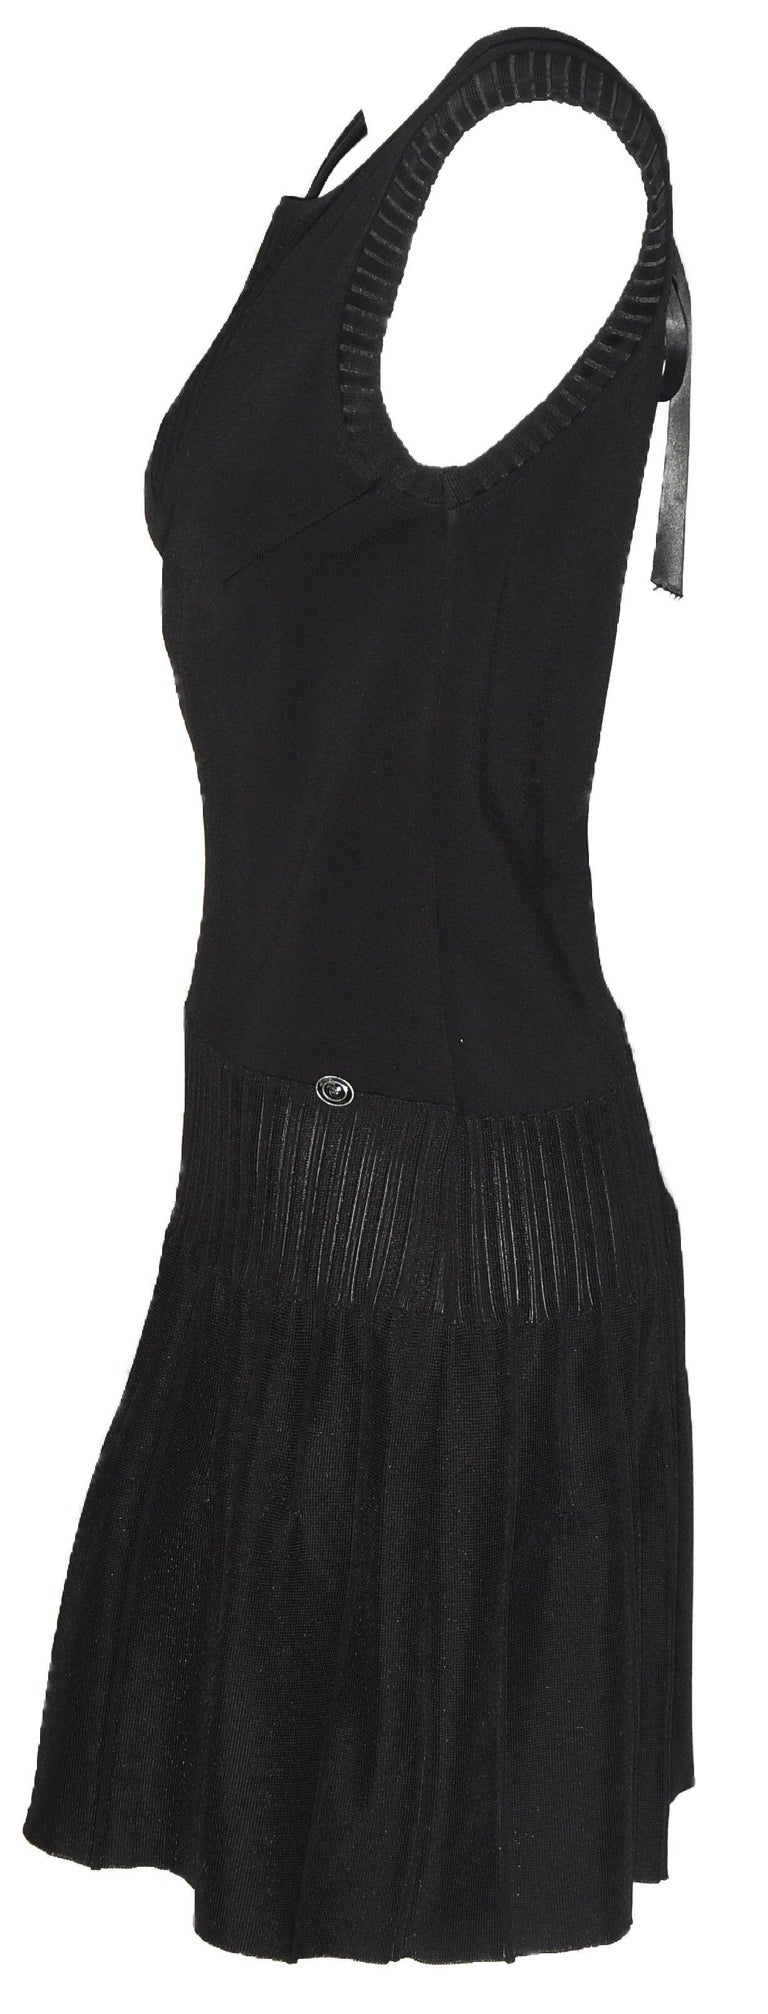 Chanel black sleeveless dress includes a V peek a boo back that is tied with a black satin bow.  This dress is ribbed at the front V neck and the slight drop sleeves.  With a drop waist to the hips this dress is gathered with mini ribbed pleats then